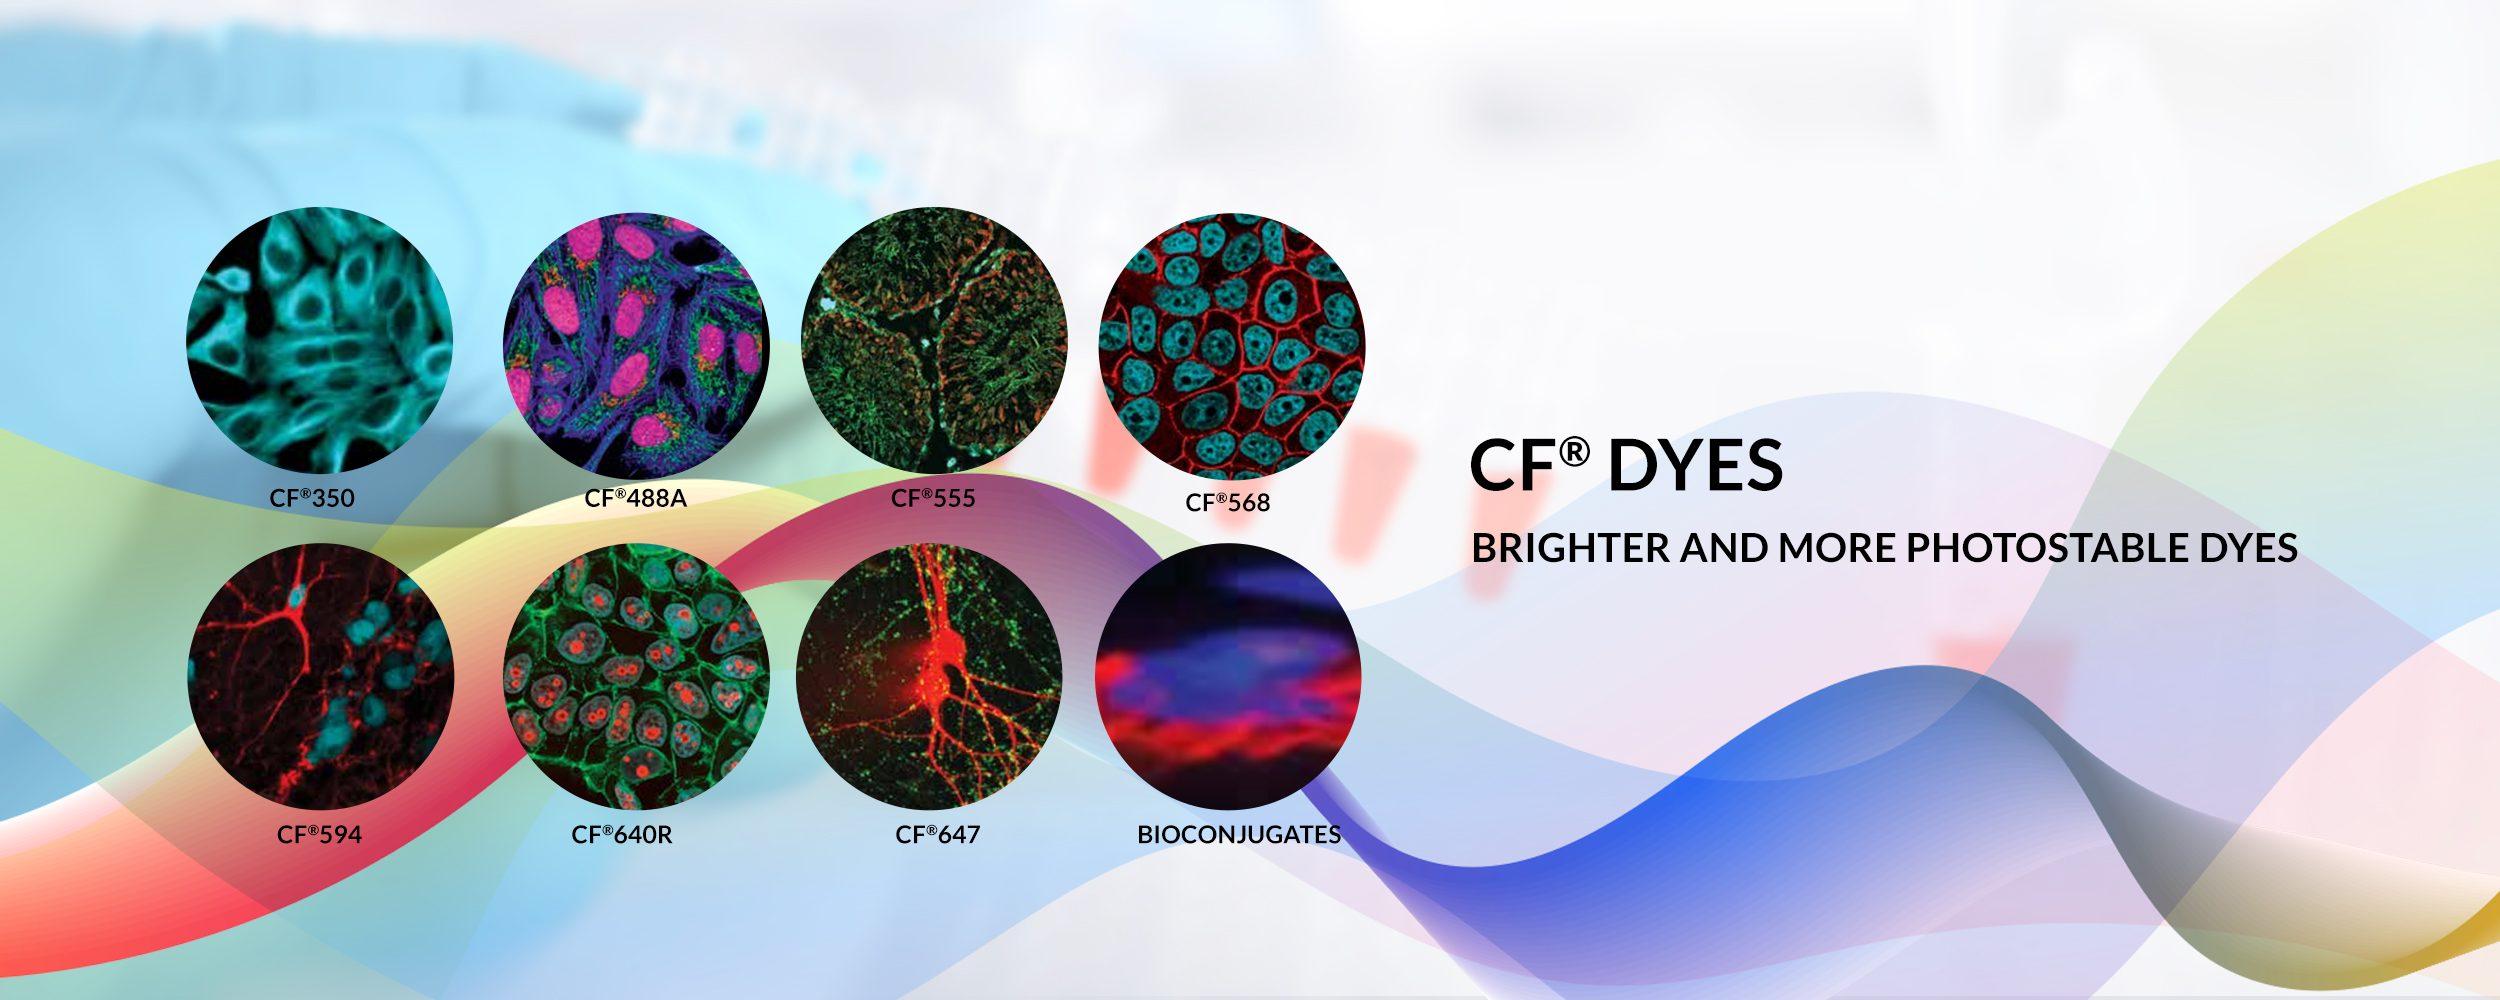 CF dyes, Brighter and more photostable dyes